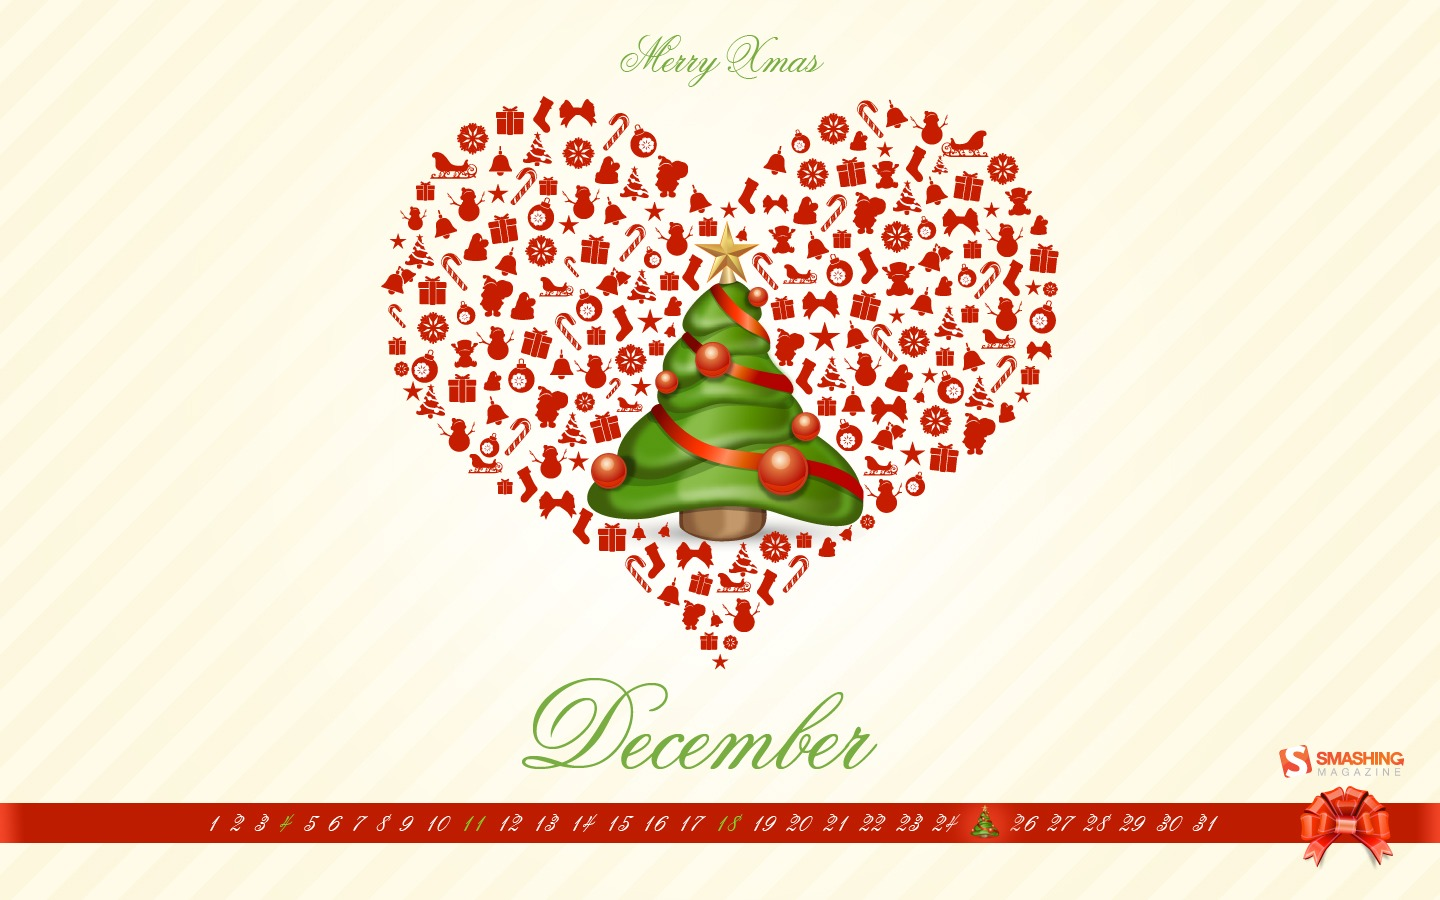 In January Calendar Wallpaper 31146